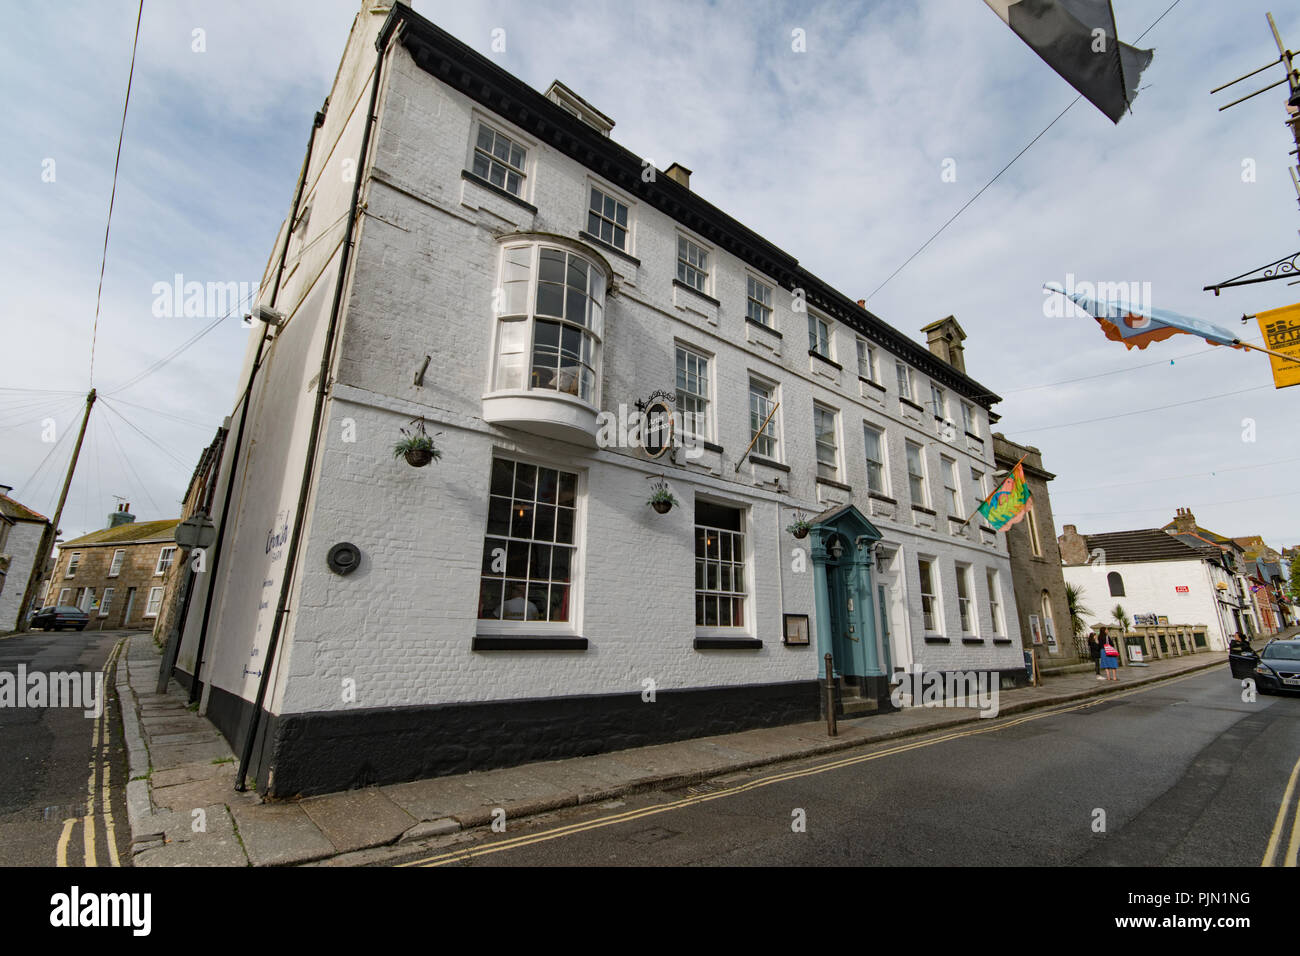 Artists residence Chapel Street Penzance - Stock Image